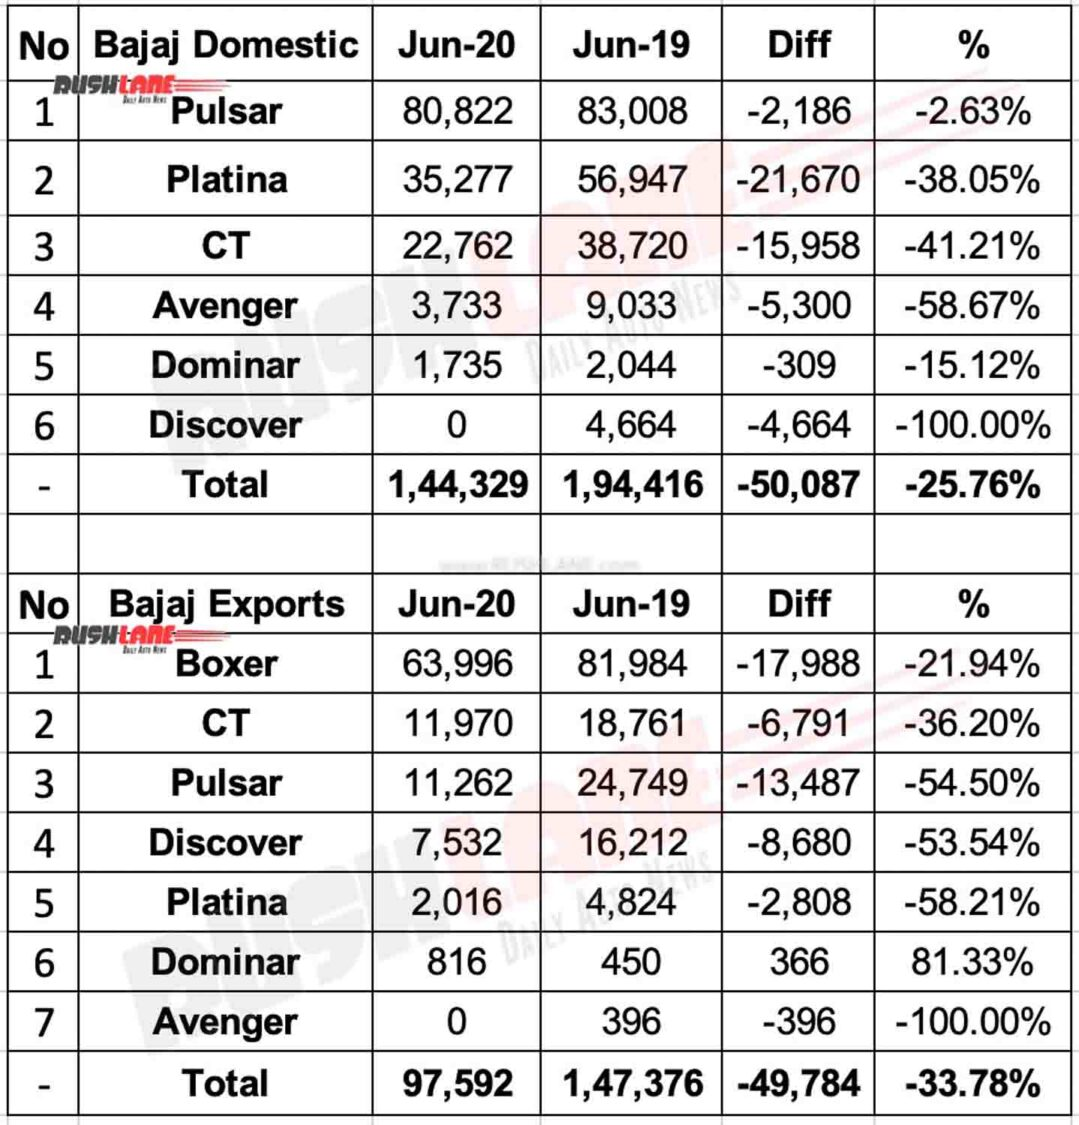 Bajaj sales vs exports - June 2020